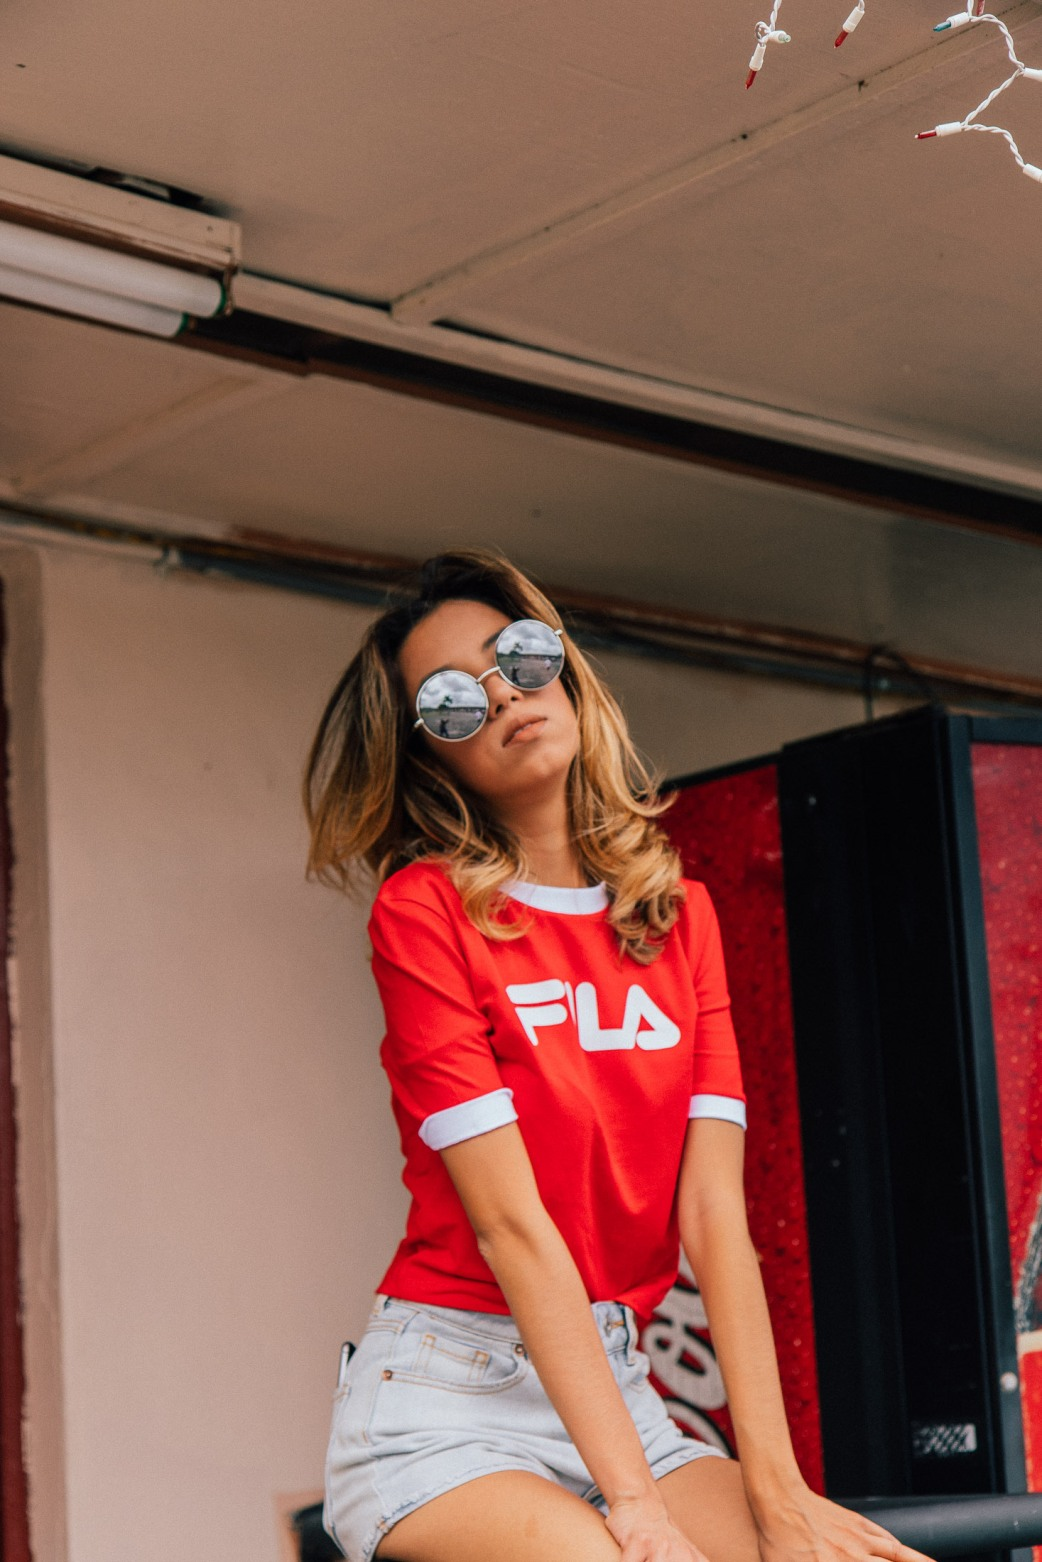 loudtasteless_fila_shirt_shorts_round_sunglasses